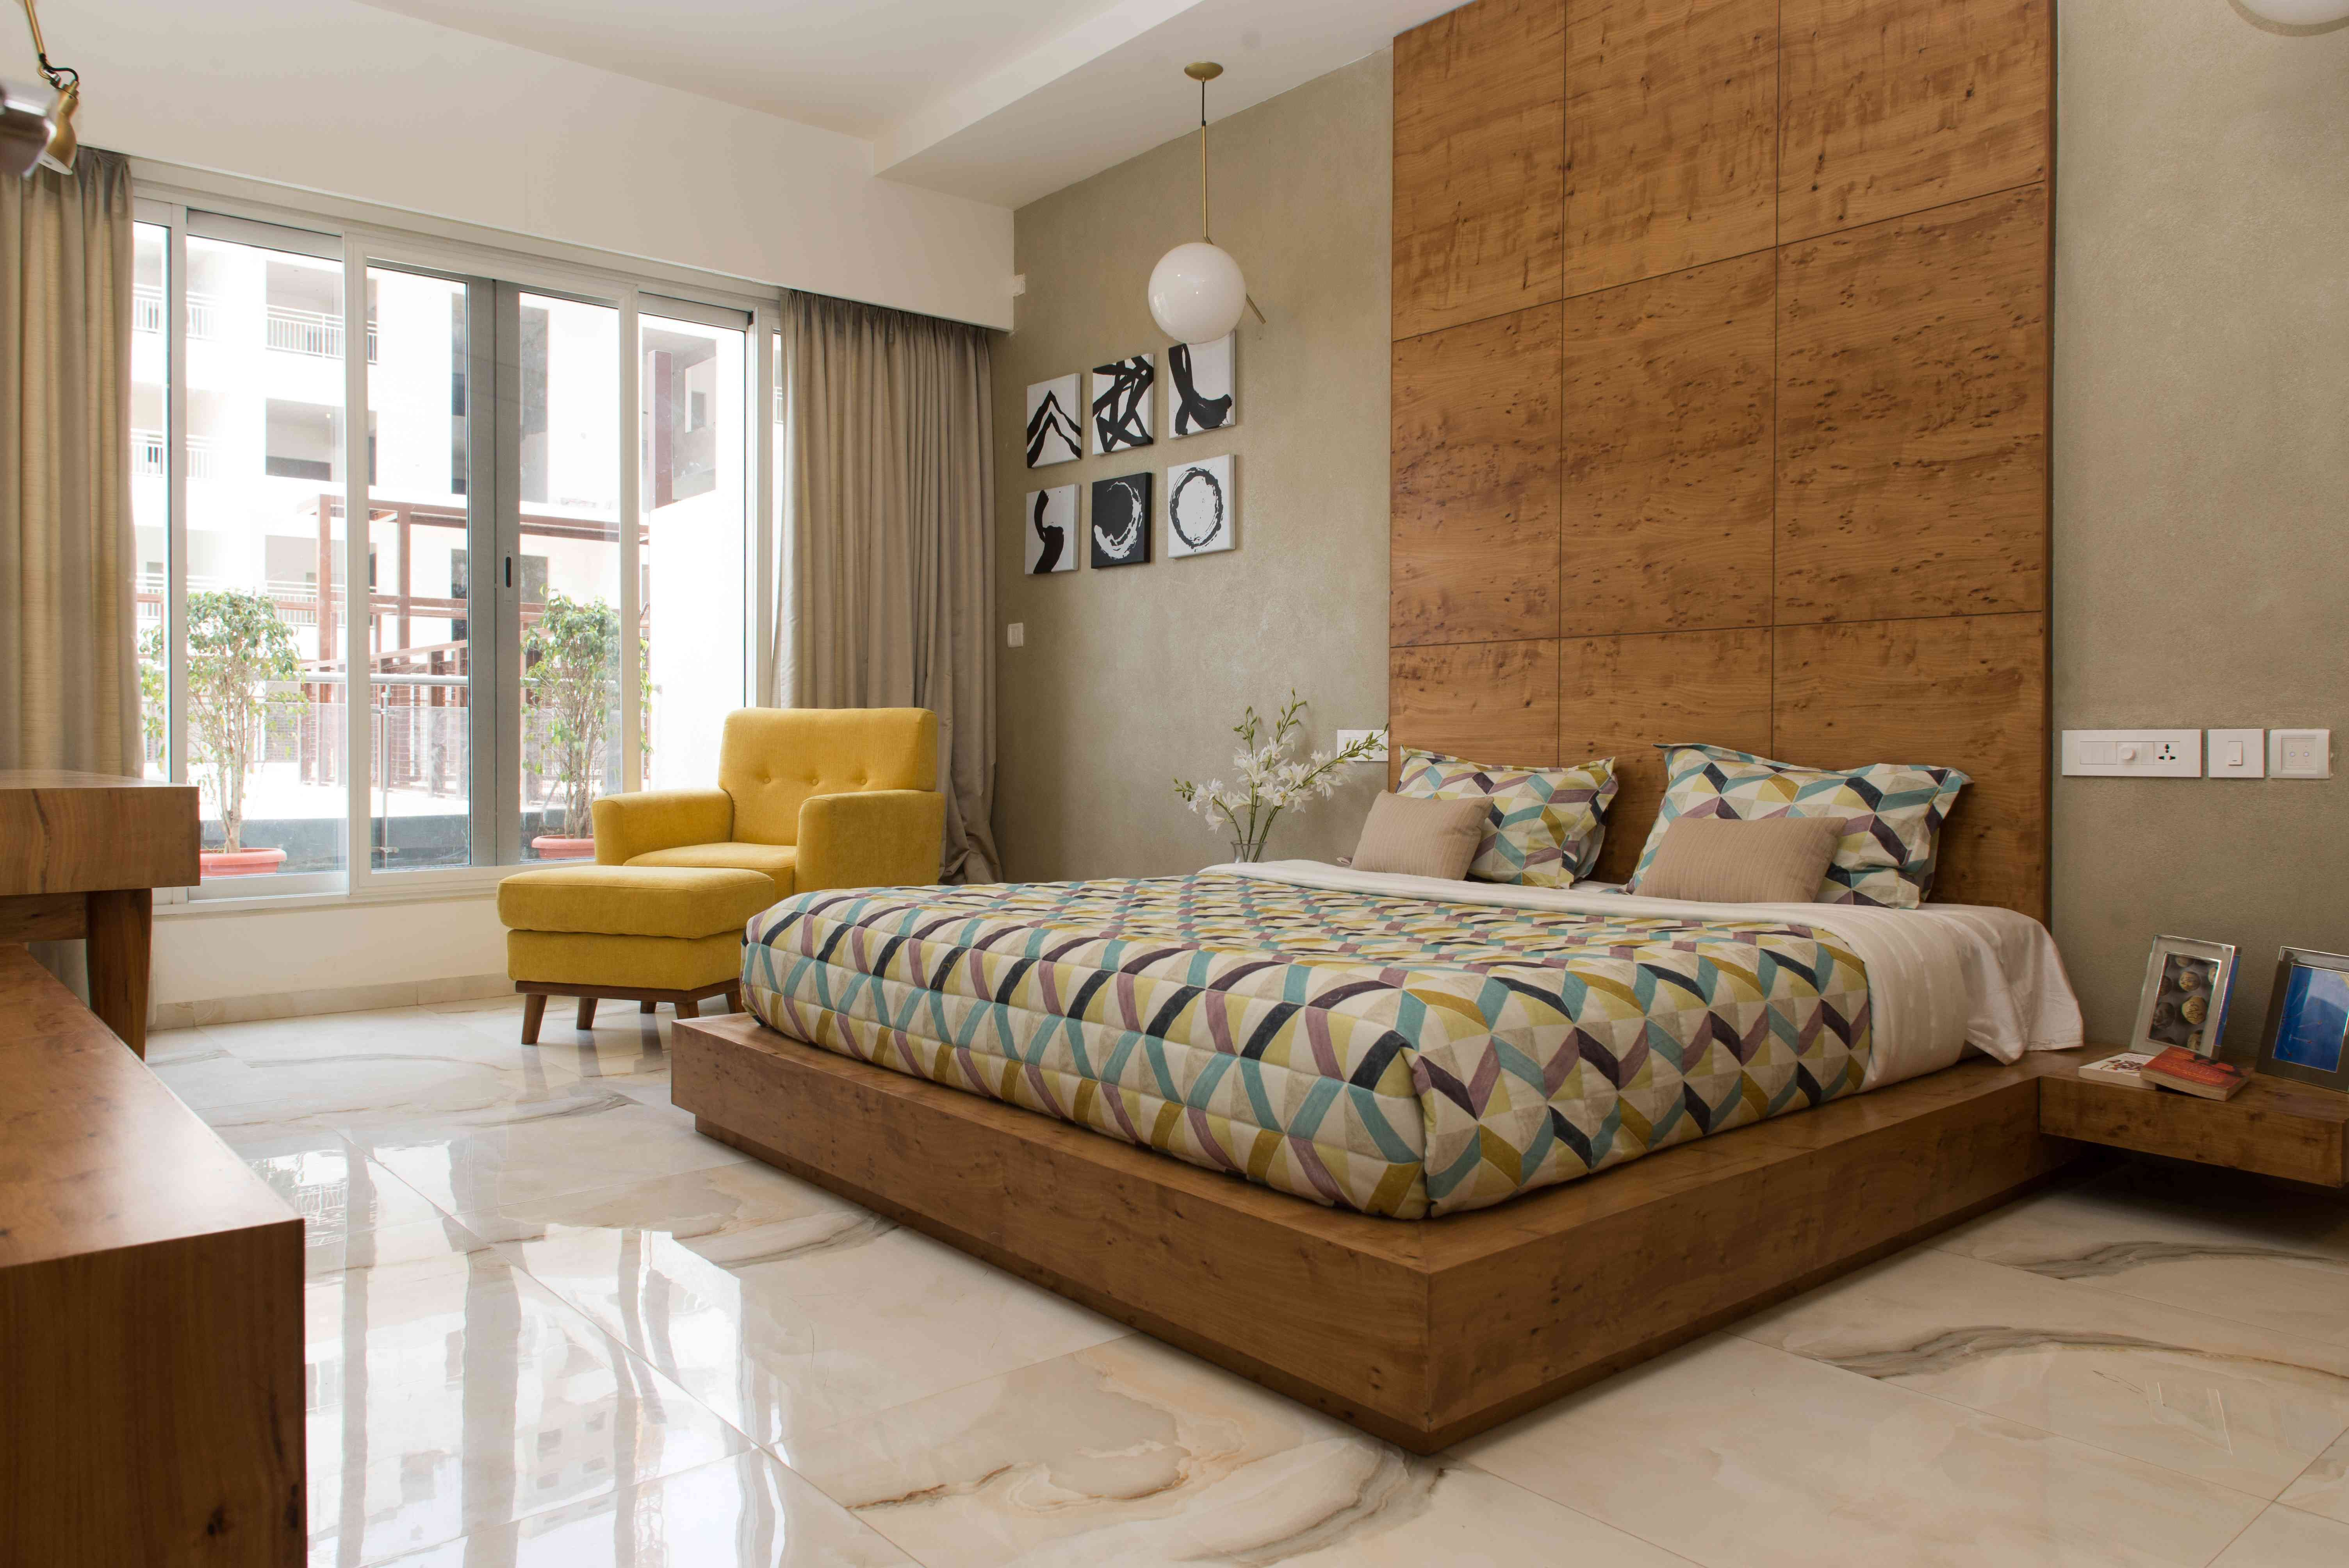 Design By Atom Interiors Modern Style Bedroom Master Bedroom Interior House Interior